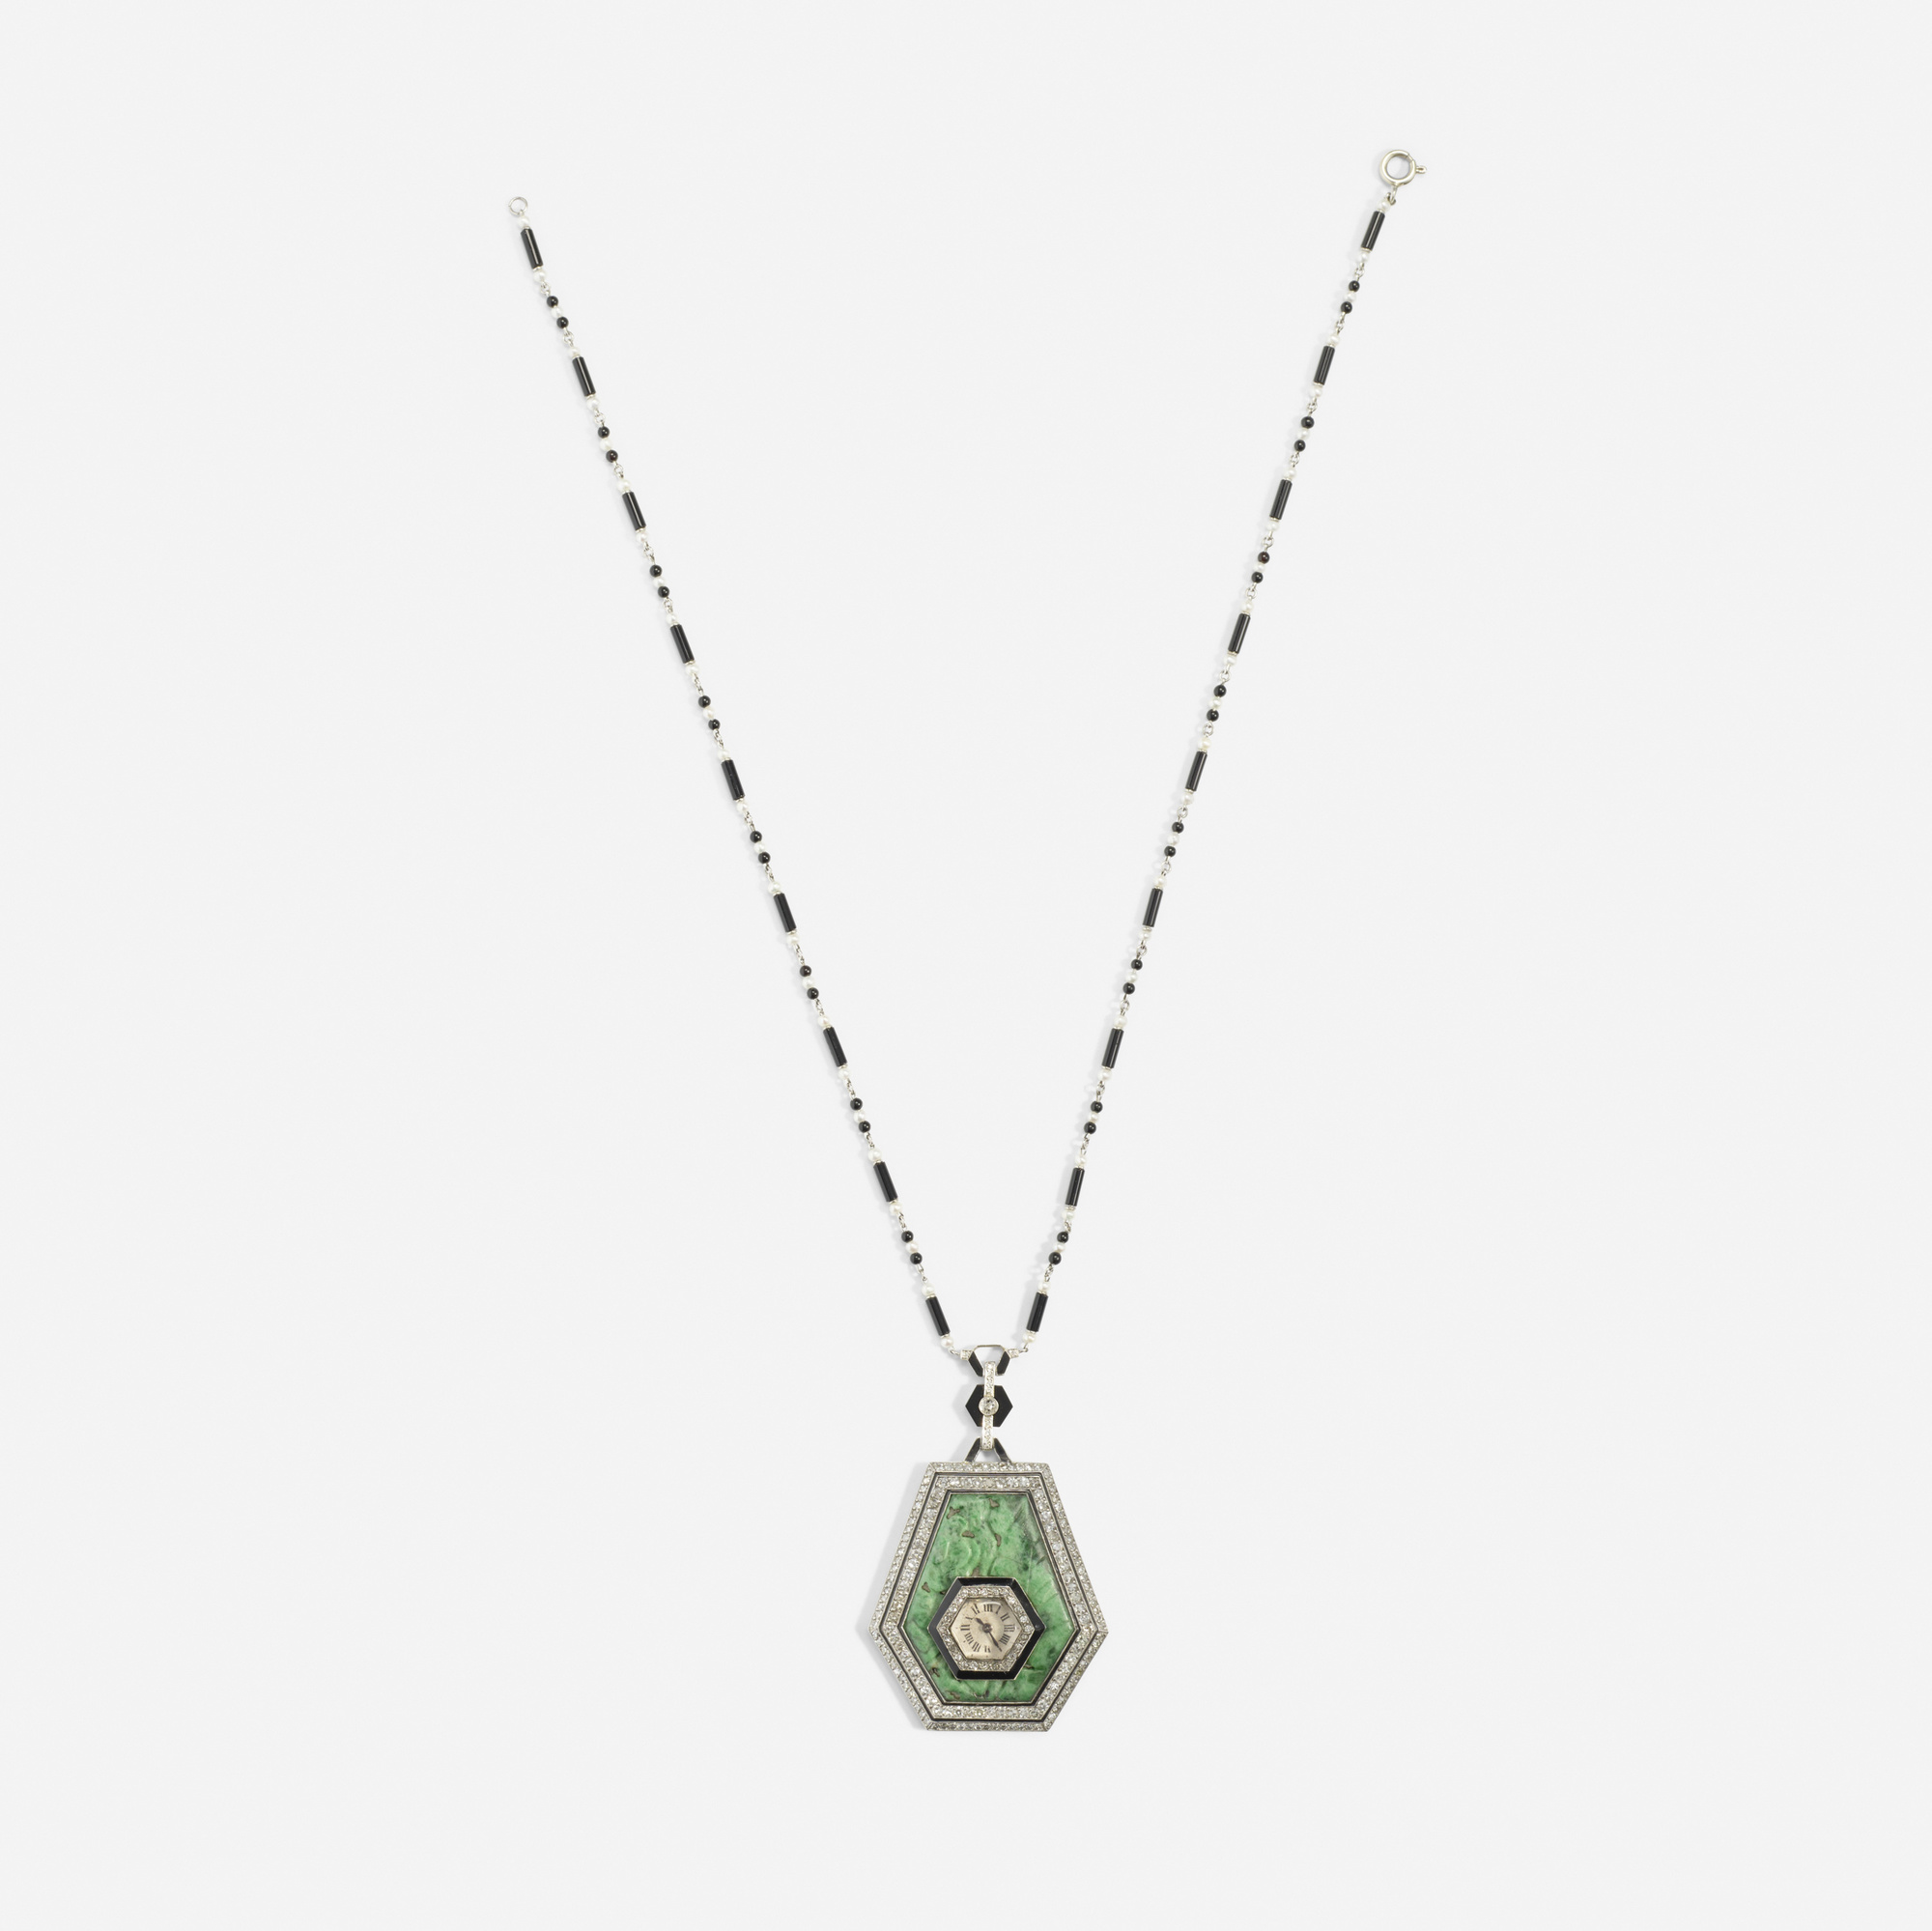 130: Art Deco / A platinum, jade, diamond and onyx watch necklace (1 of 2)